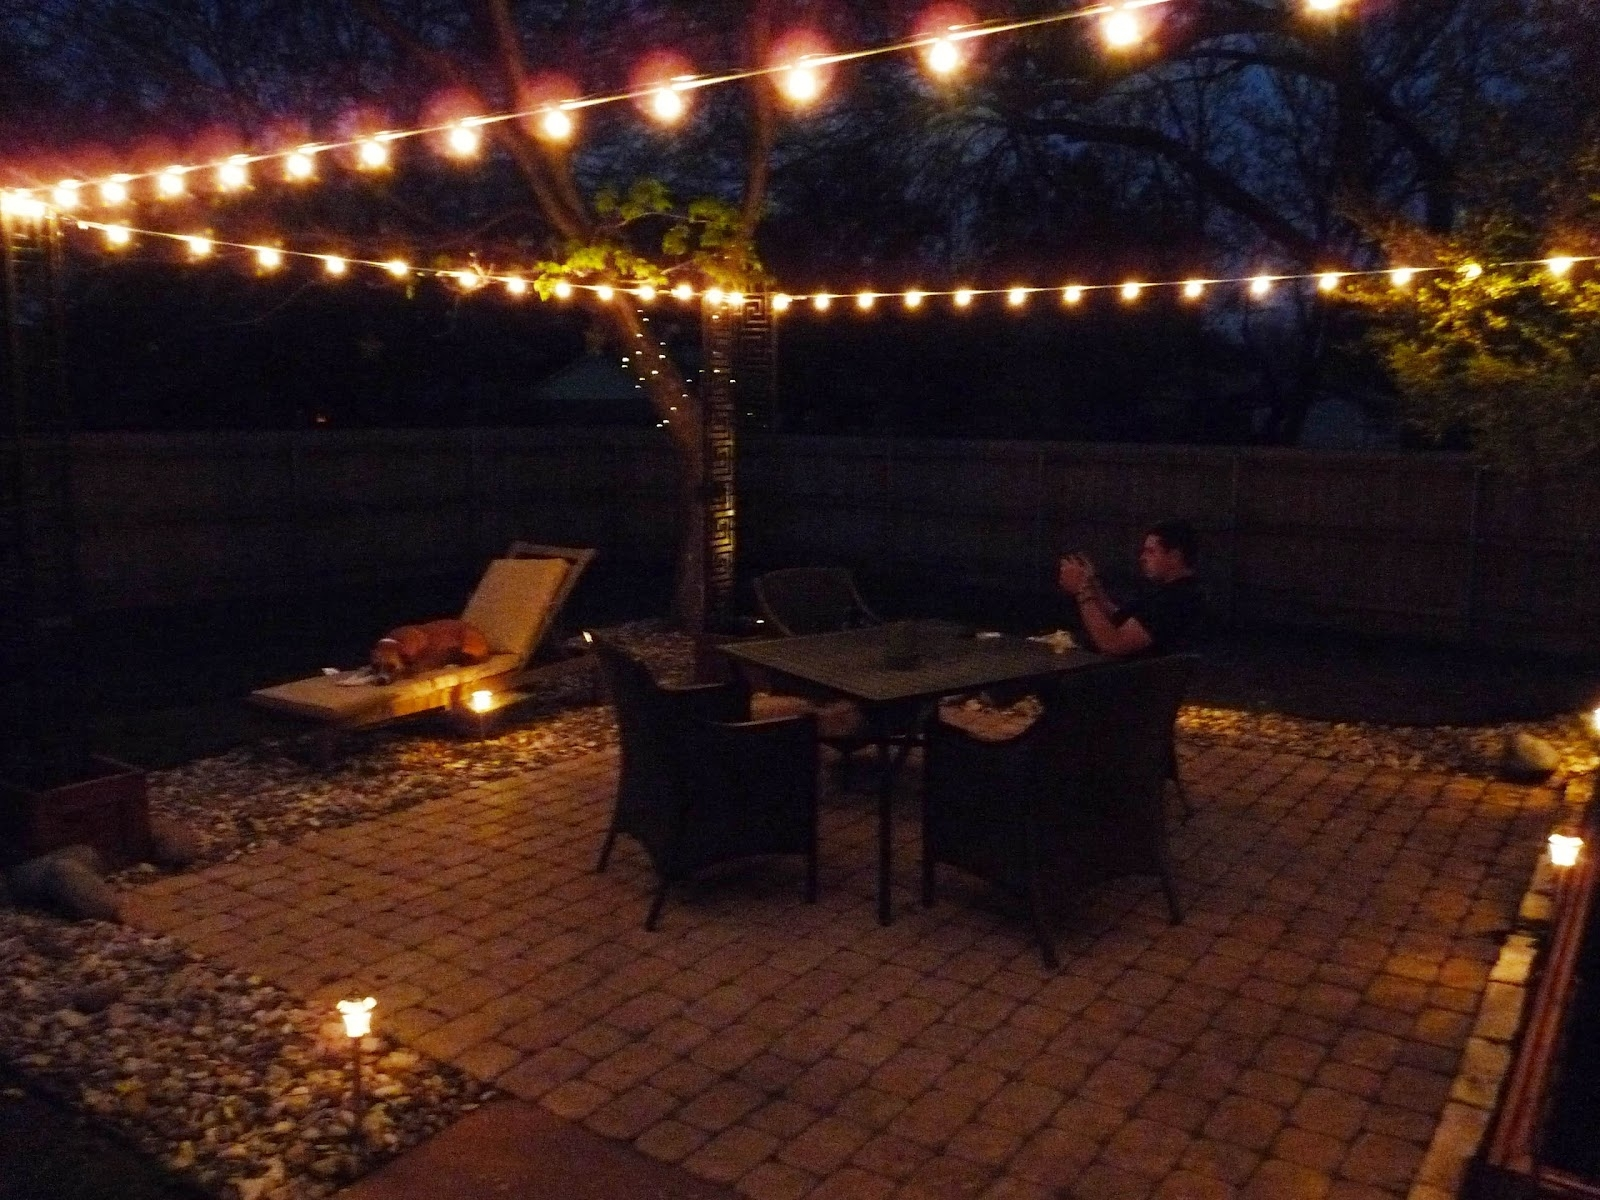 Well Known The Happy Homebodies: Diy: Stringing Patio Cafe Lights With Regard To Hanging Outdoor Rope Lights (View 19 of 20)